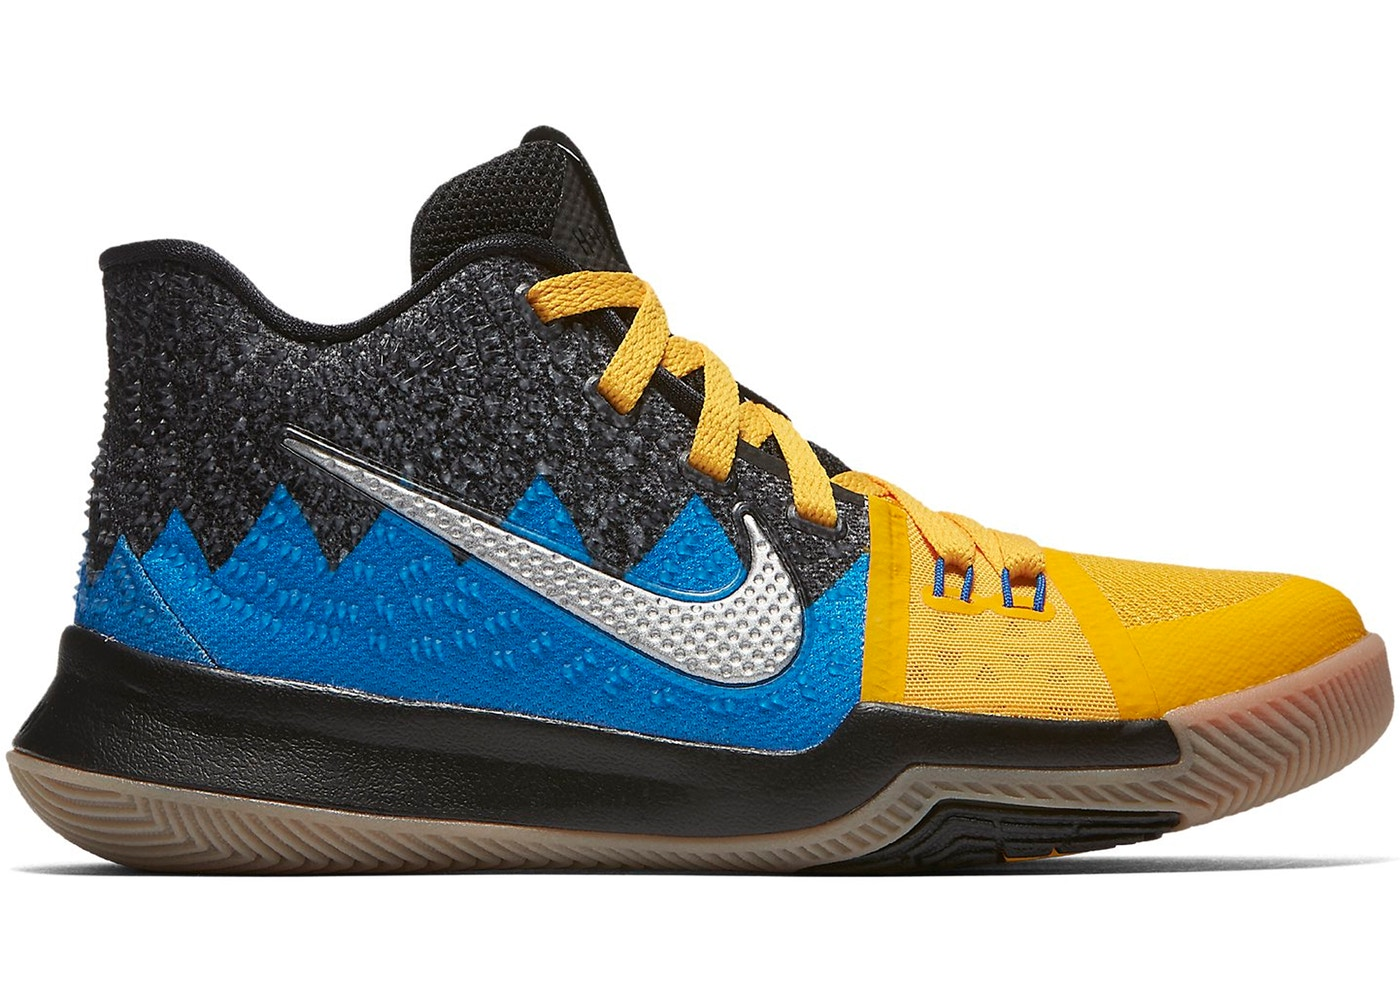 bfeb0a9c8d60 Nike Basketball Kyrie Shoes - New Lowest Asks